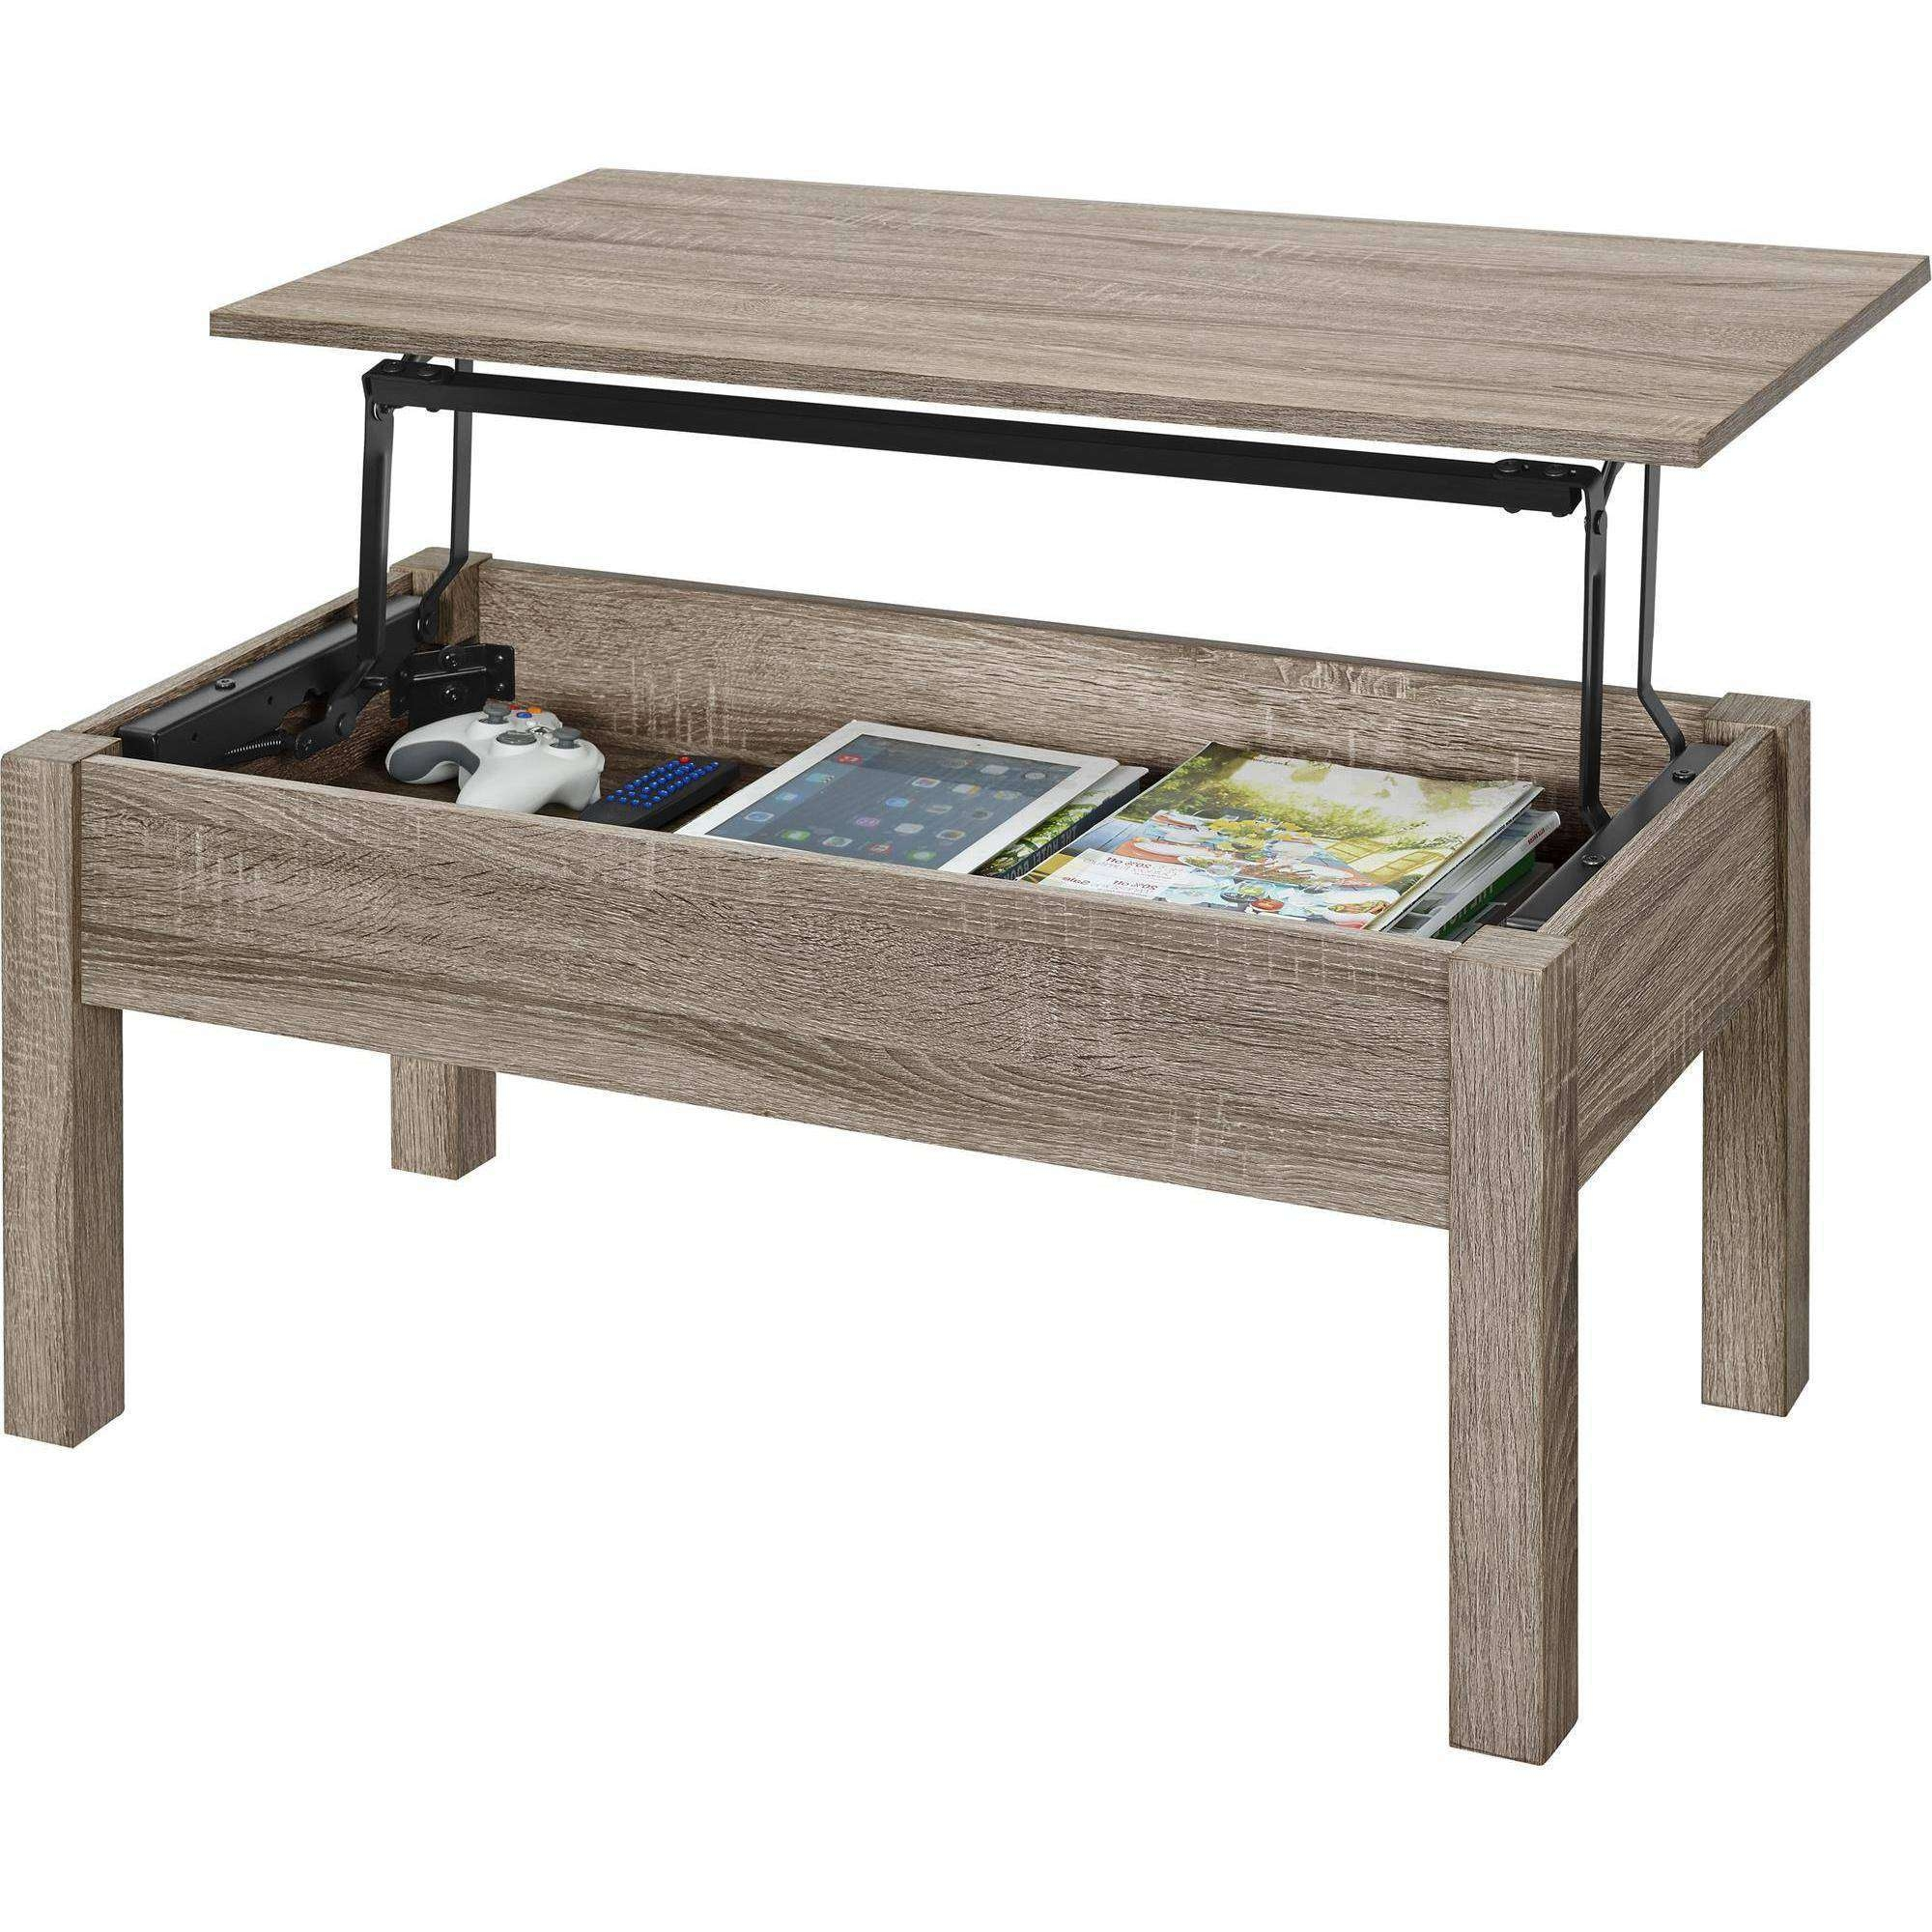 Mainstays Lift Top Coffee Table, Multiple Colors – Walmart For Most Recent Raise Up Coffee Tables (View 19 of 20)